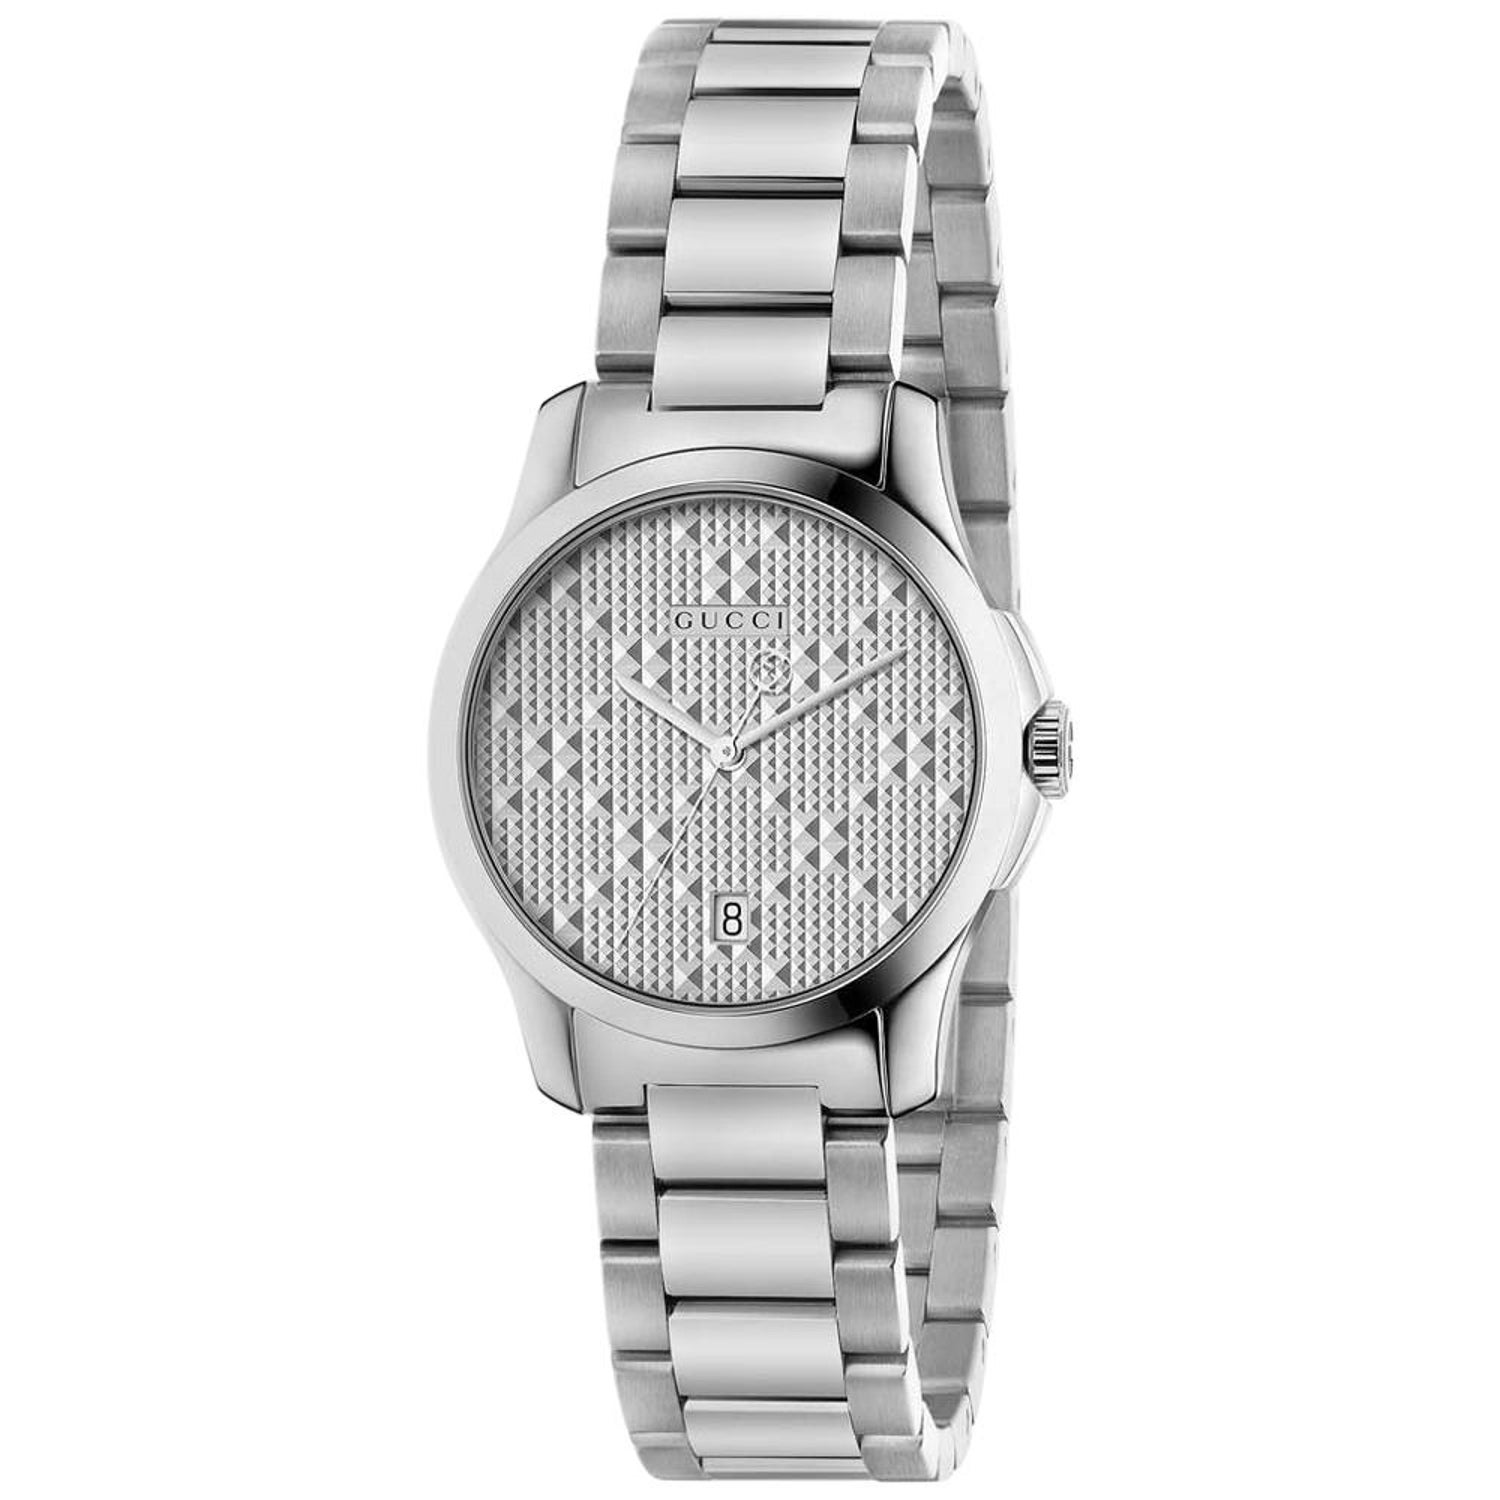 197cd3d284c Gucci G-timeless Silver Dial Stainless Steel Ladies Watch Item No. YA126551  For Sale at 1stdibs